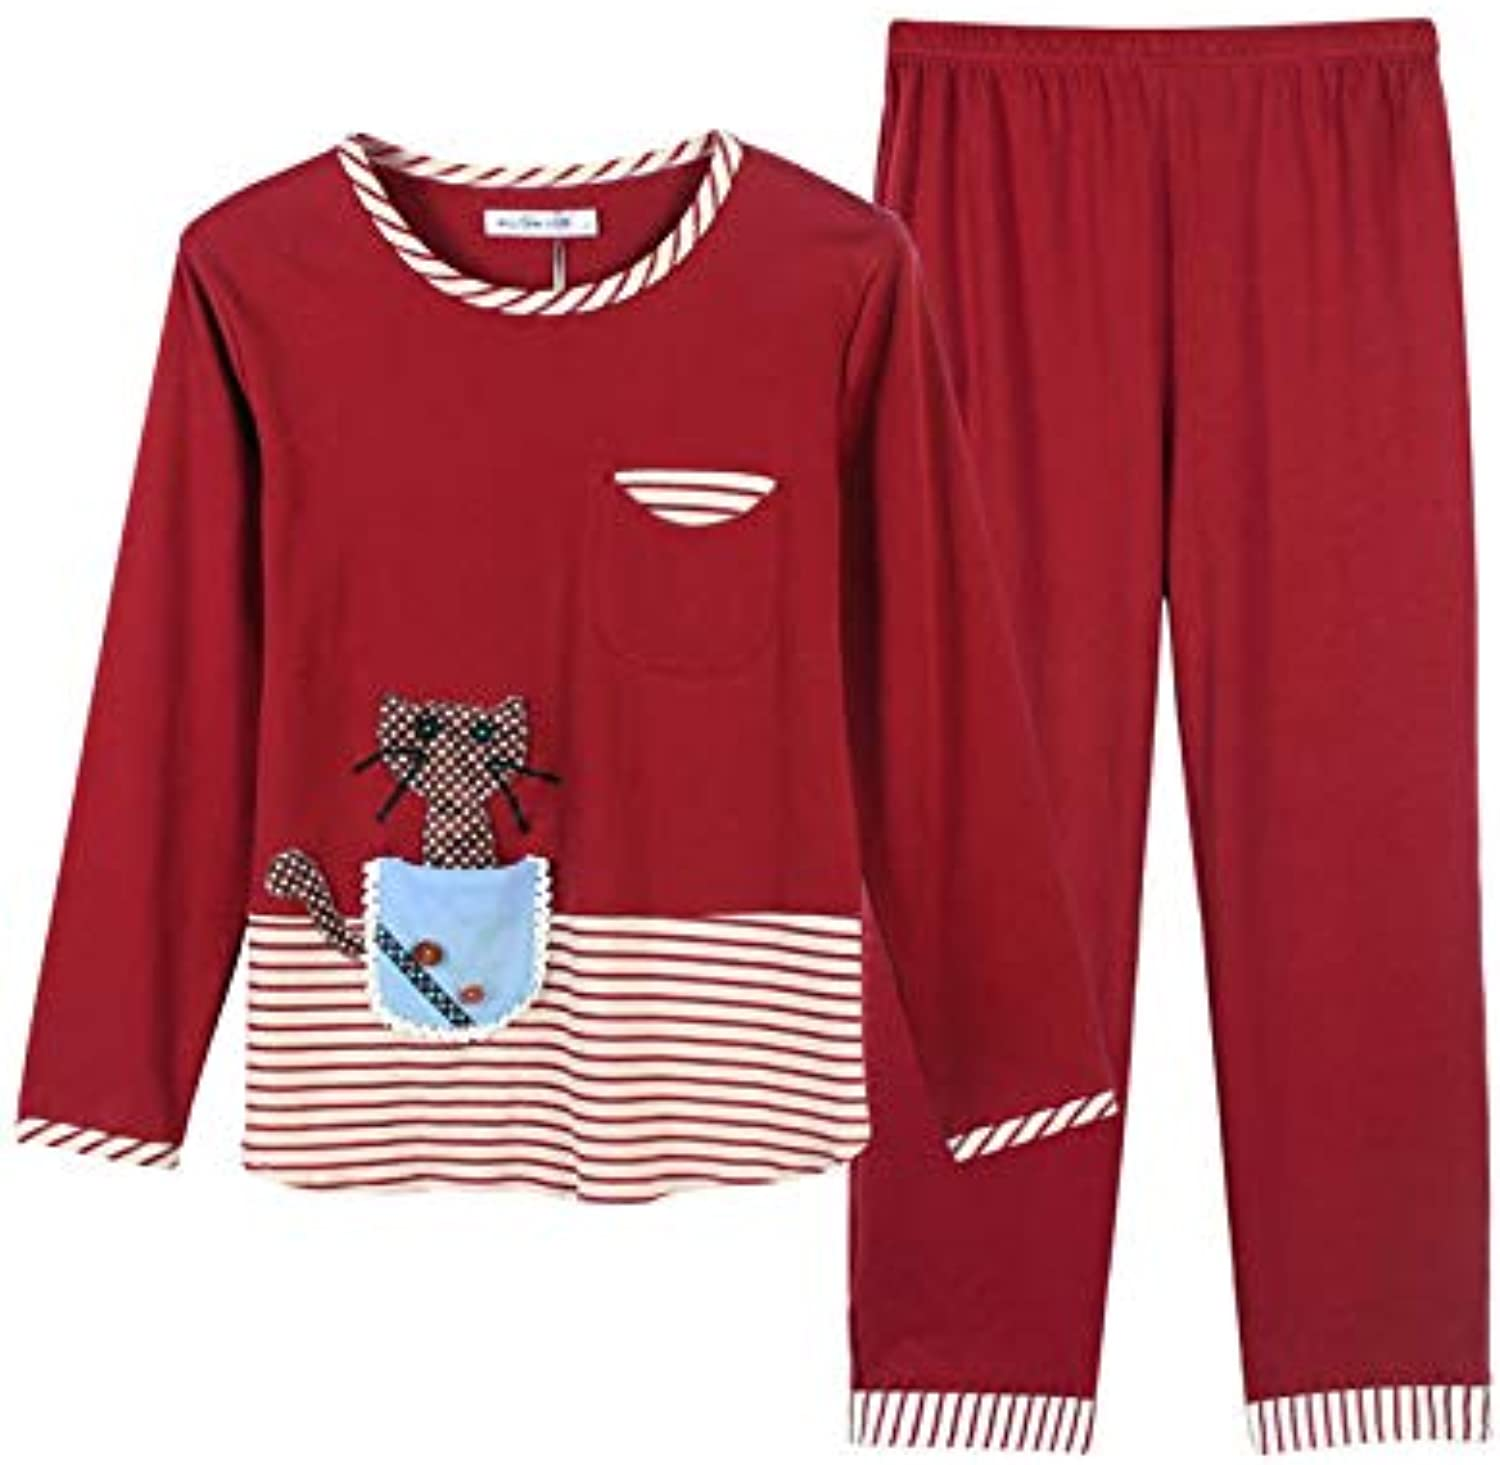 IANXI Home Spring and Autumn LongSleeved Cotton Korean Cute Big Size Fat mm Autumn and Winter Loose Casual Pajamas Women's Home Service Suit (color   Red, Size   L)